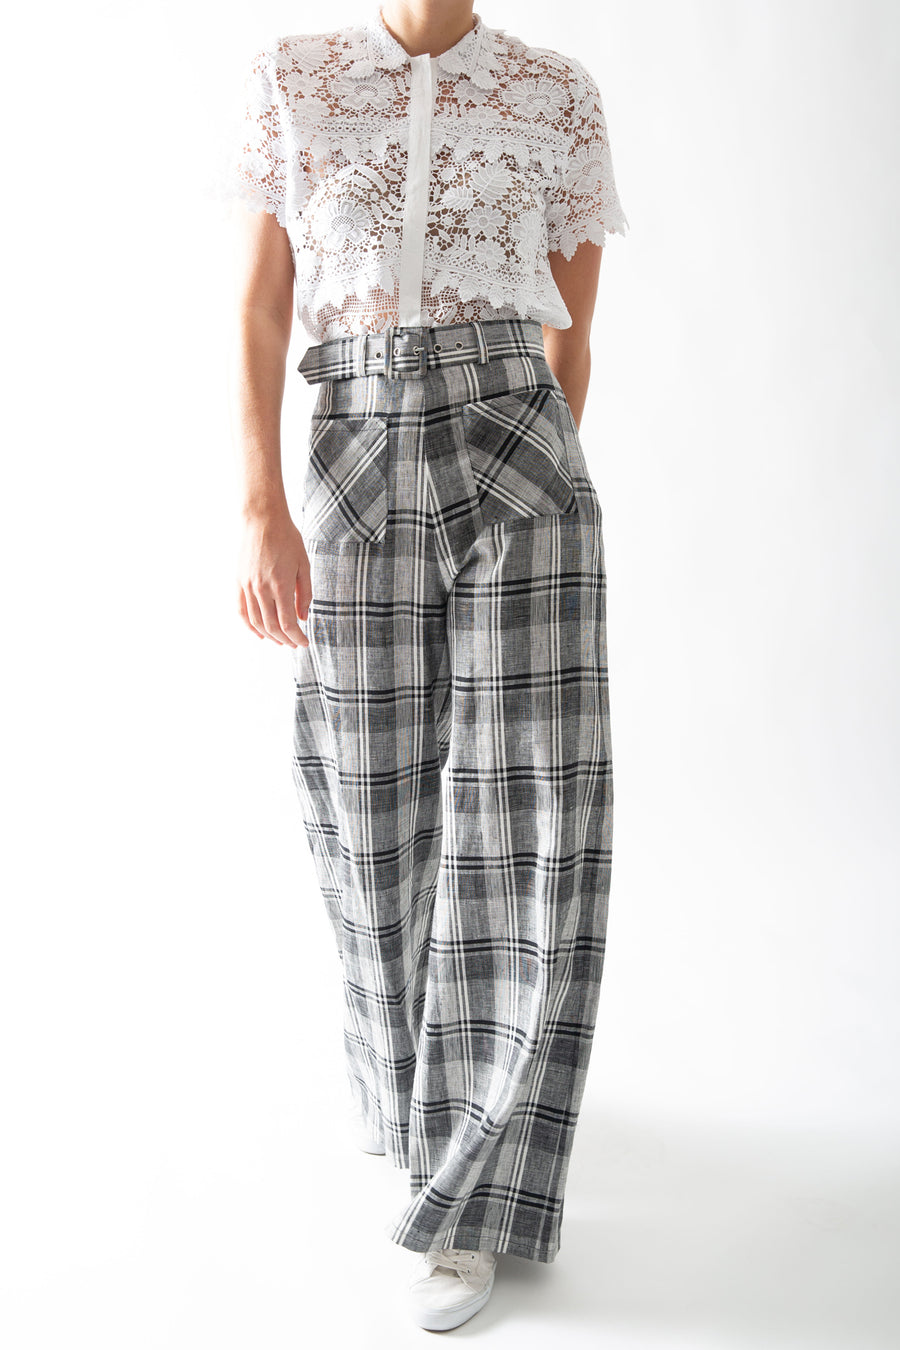 This is a photo of a woman from the neck down, she is wearing a lace, collared, button front top tucked into plaid wide leg pants. The top is a detailed floral lace embroidery, with leaf shaped scallops throughout.